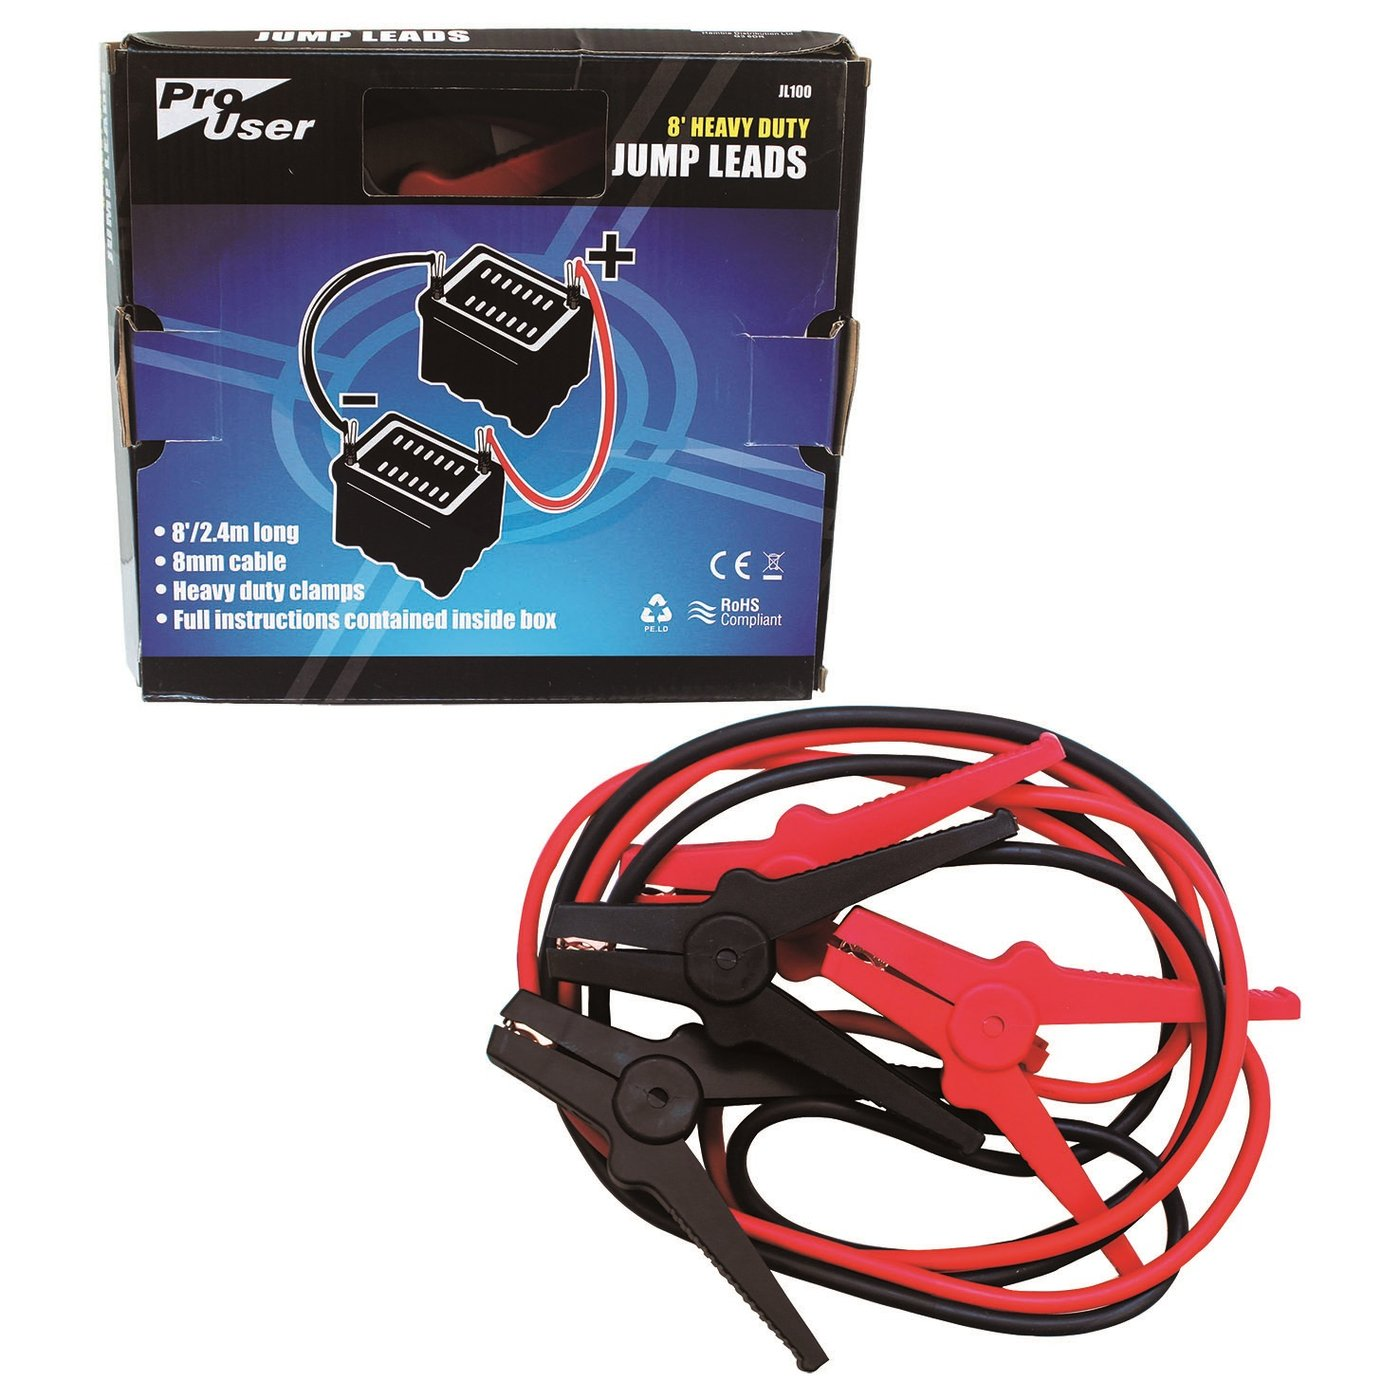 ProUser 8' Heavy Duty Jump Lead